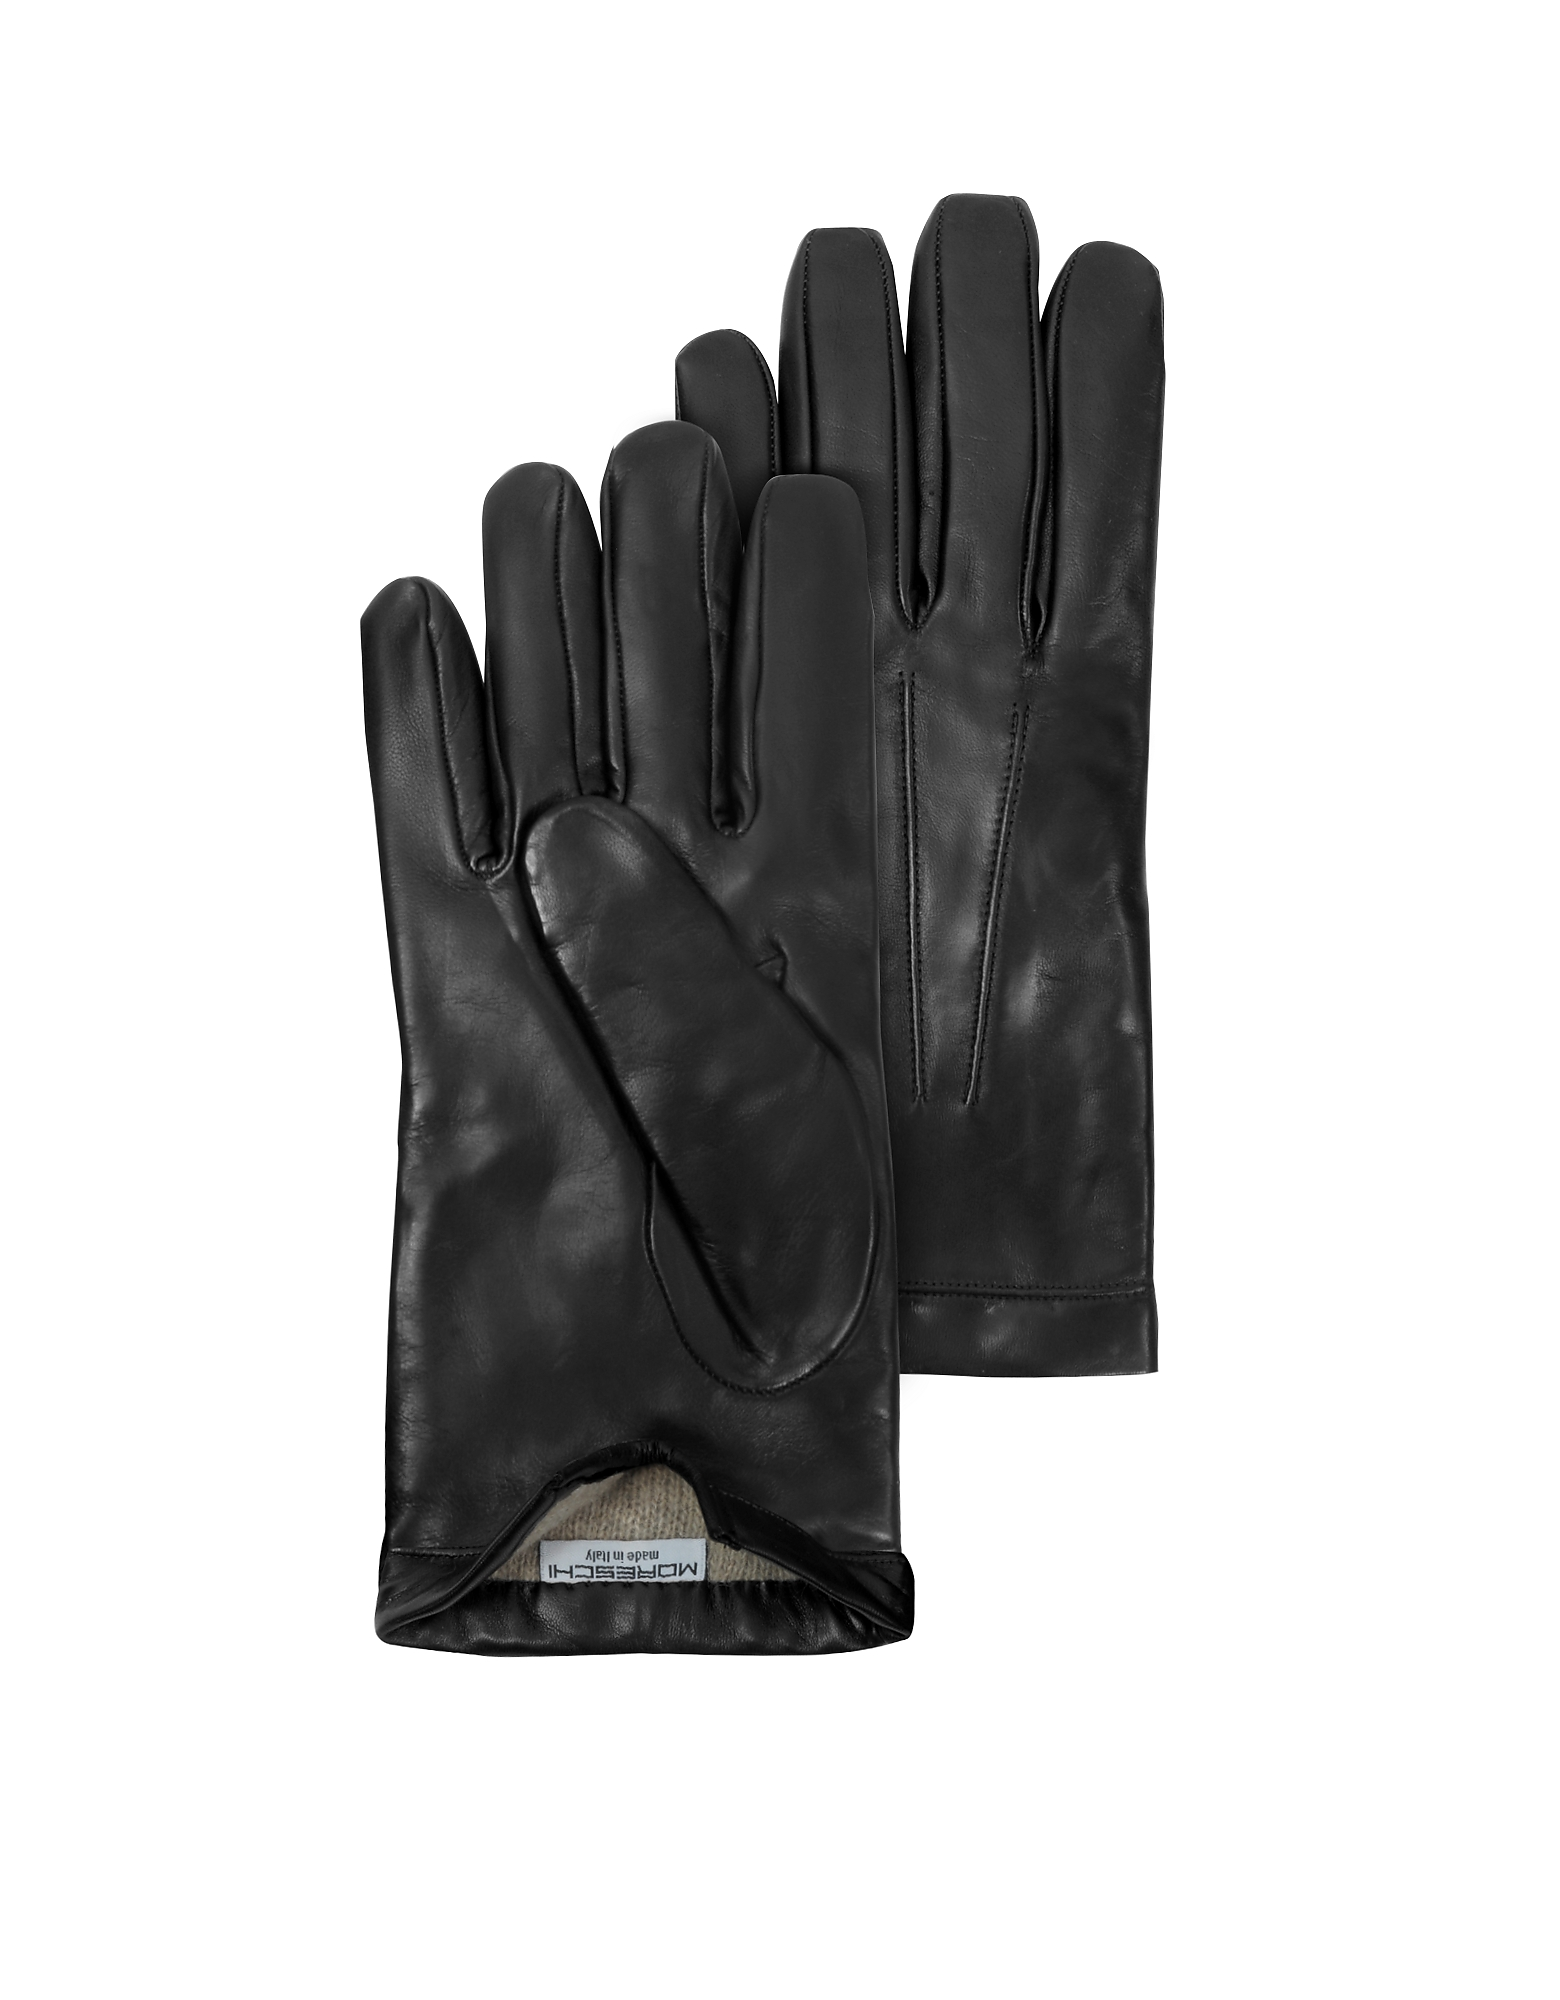 Siberia Black Leather Men's Gloves w/Cashmere Lining от Forzieri.com INT